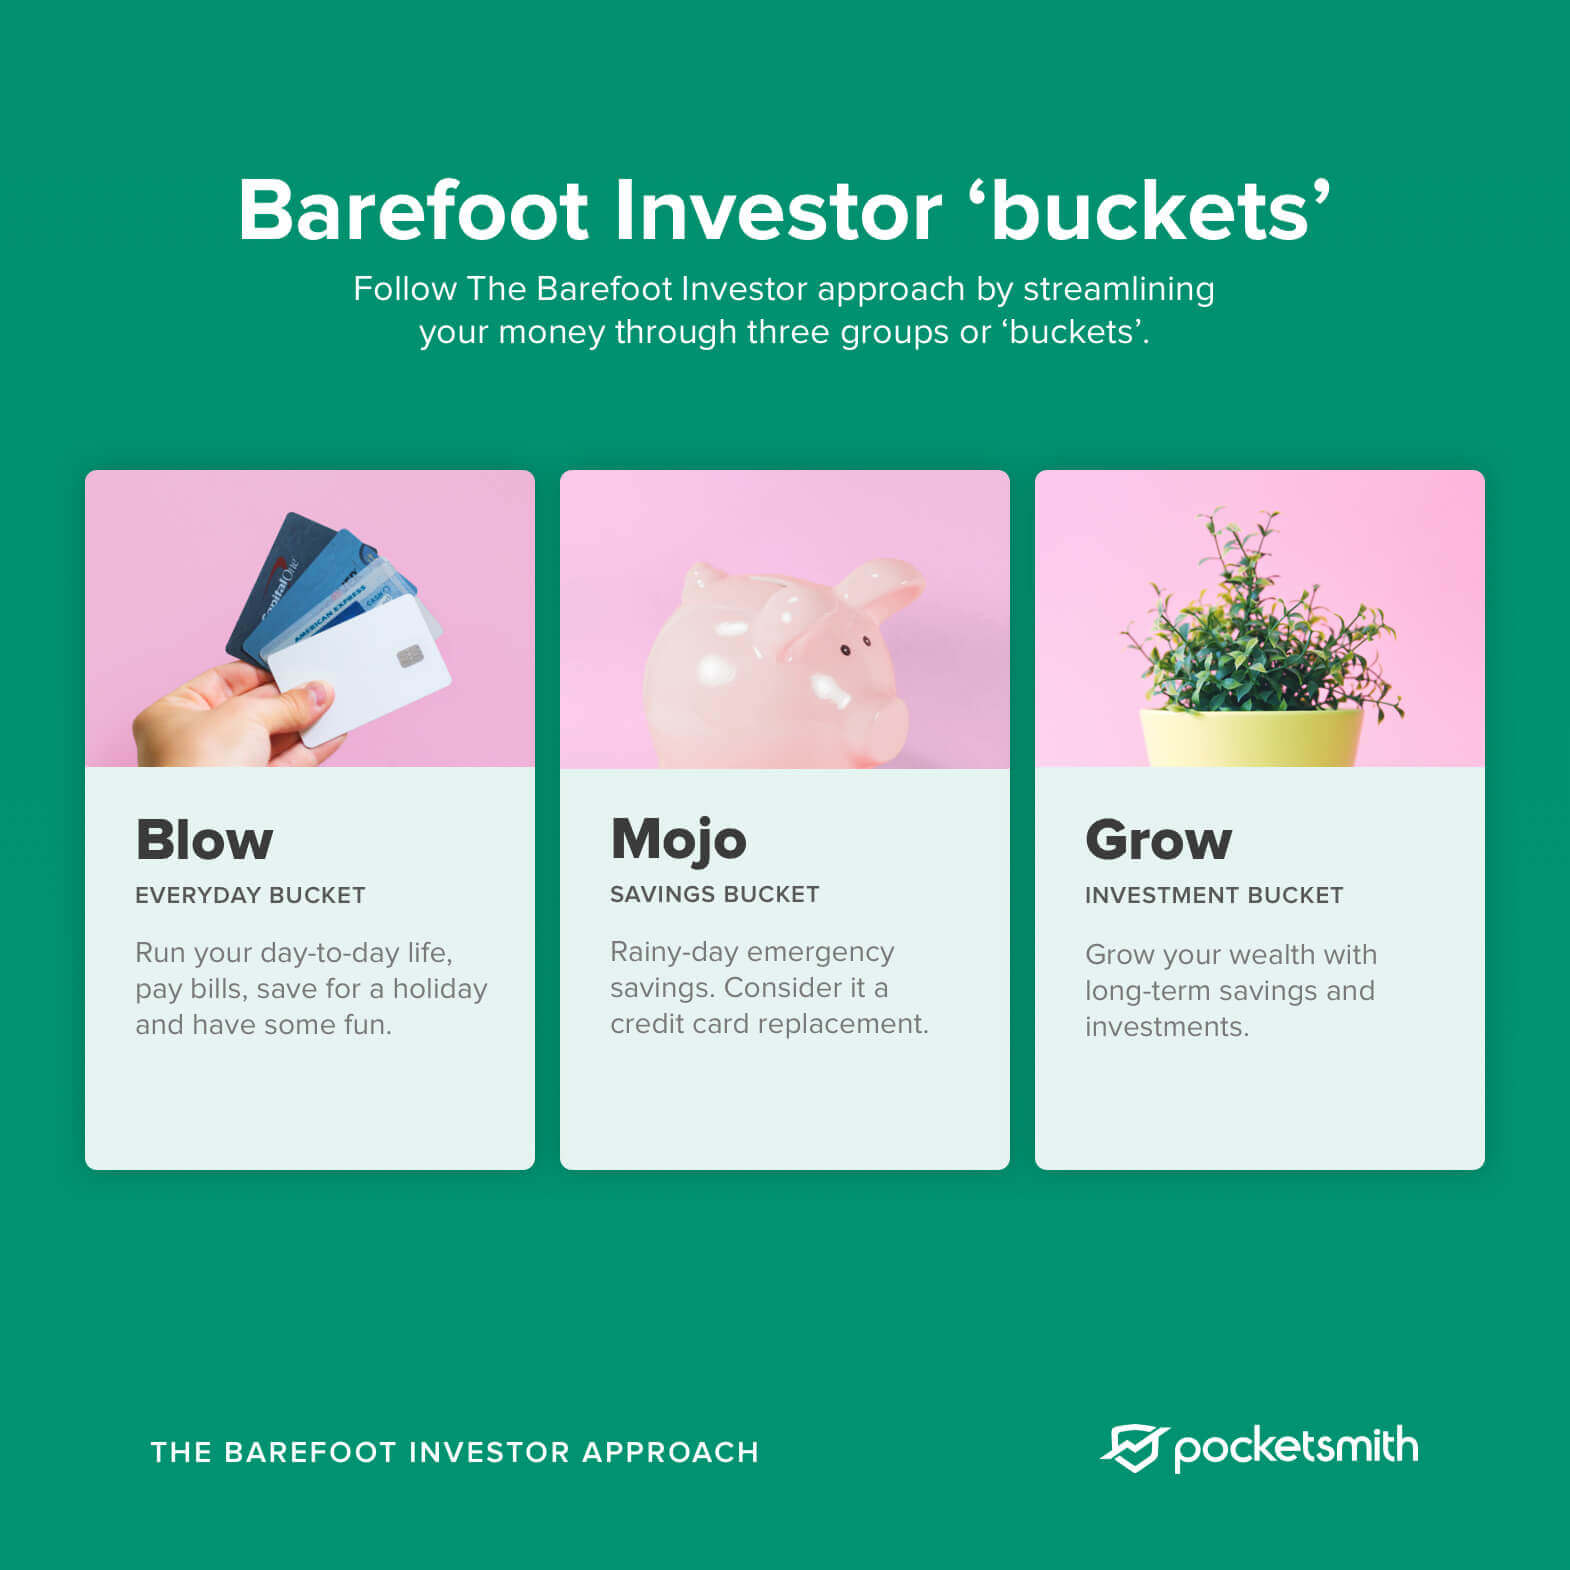 A diagram showing the breakdown of Barefoot Investor buckets - Blow, Mojo and Grow